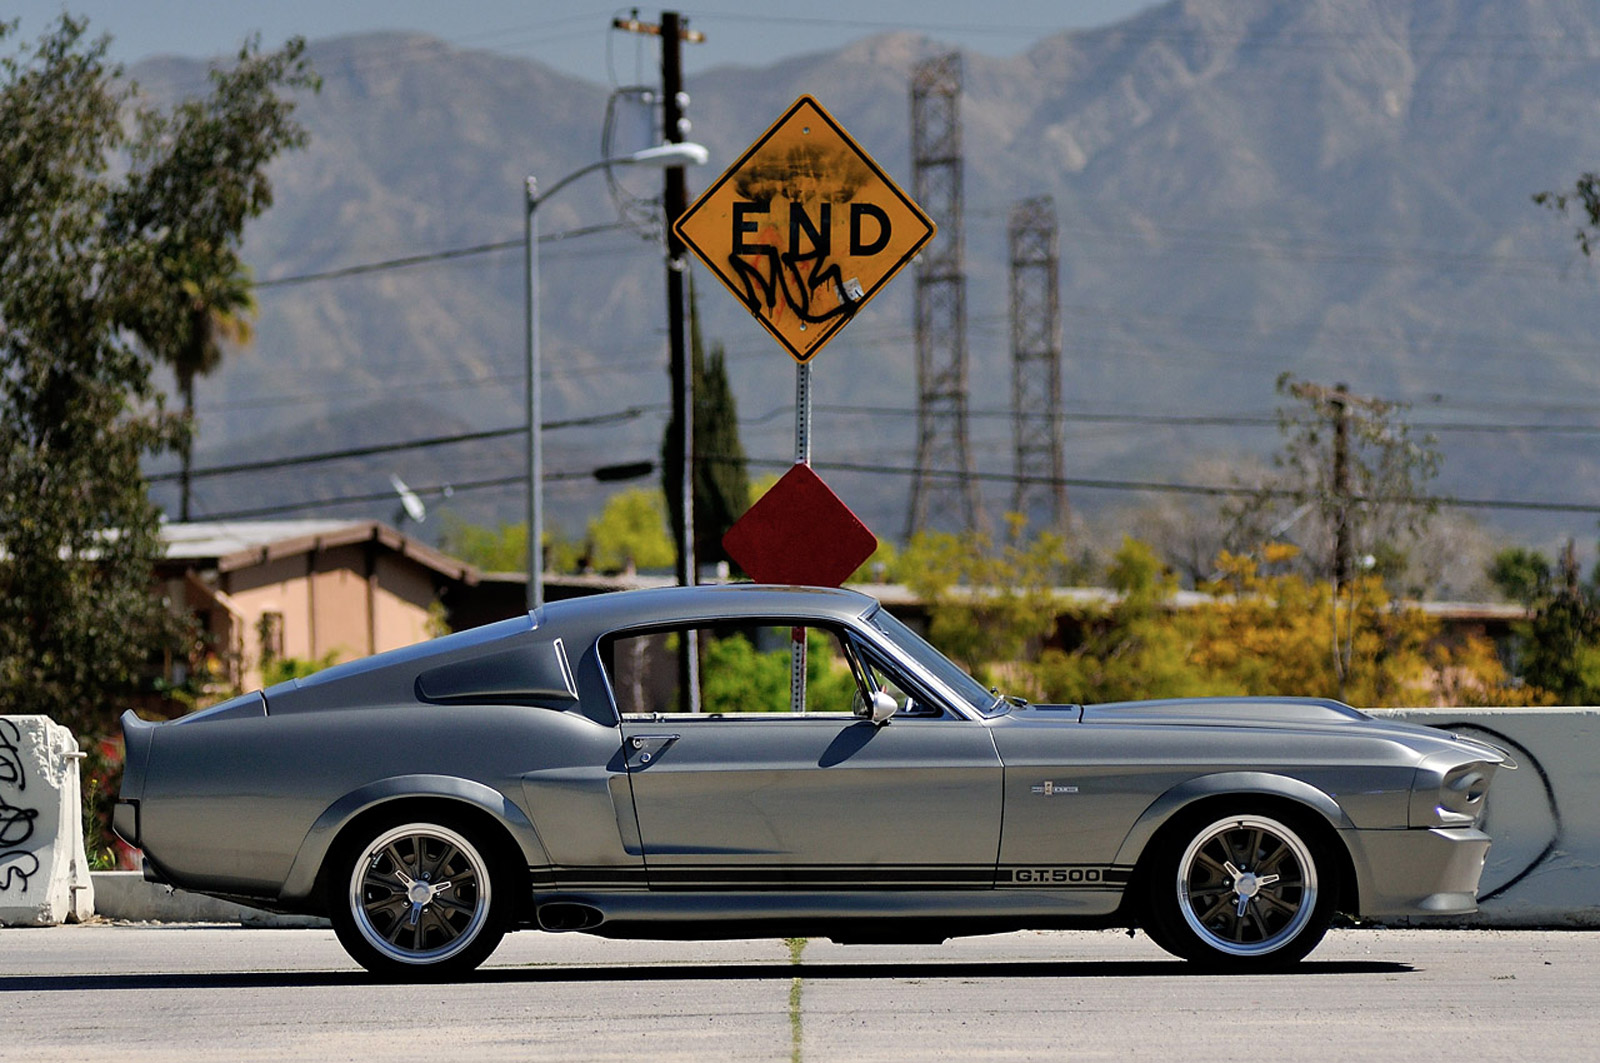 1967 Ford Mustang Eleanor Gone in 60 seconds 04